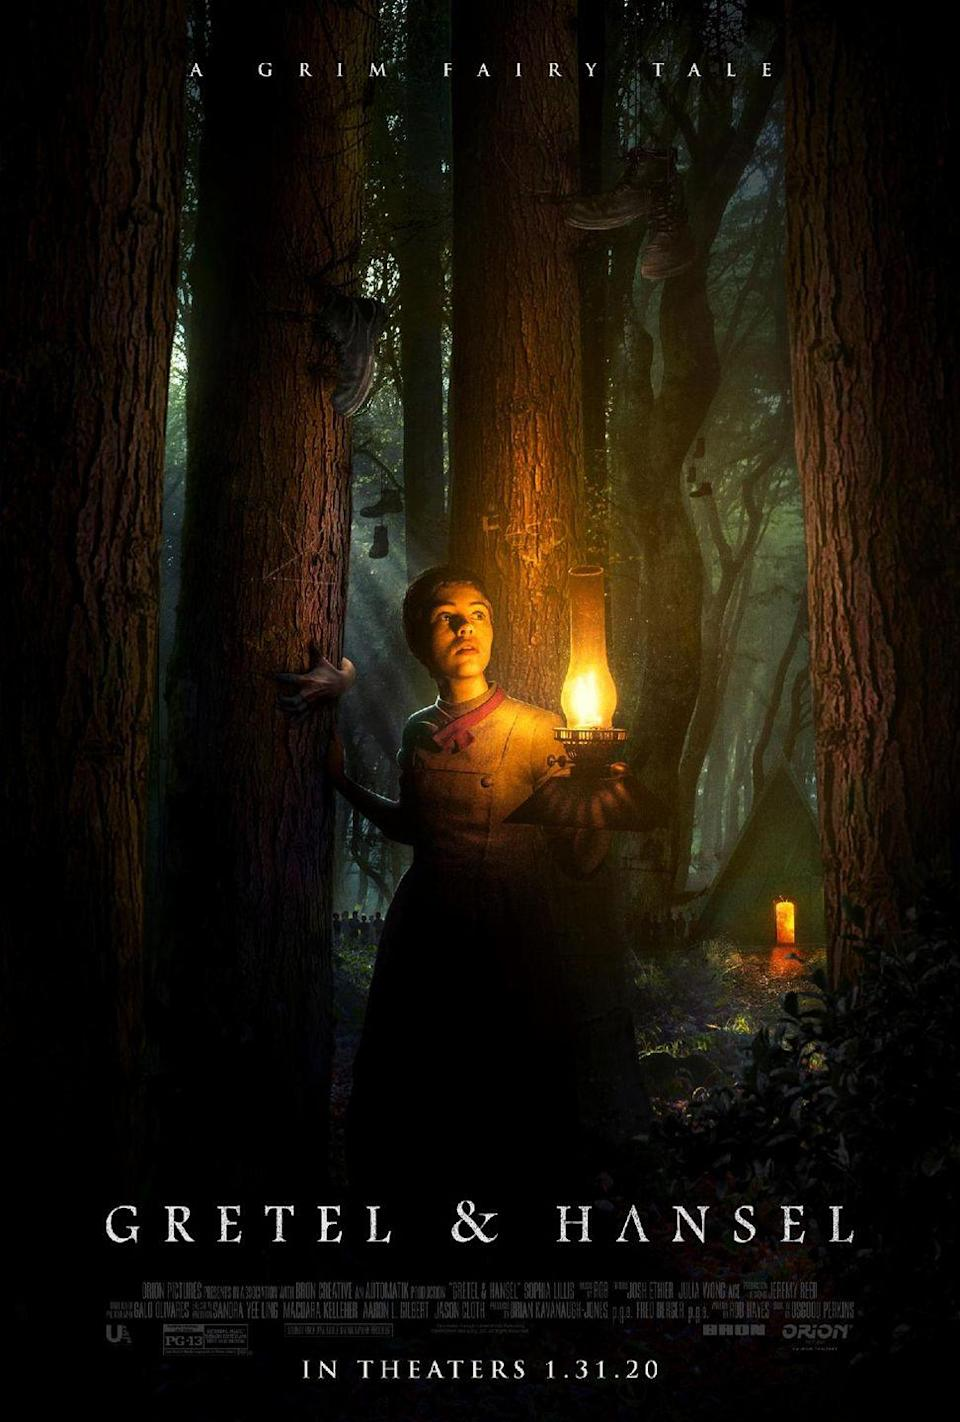 """<p>Oz Perkins is a horror lyricist fixated on grief and female agency, and both factor heavily into his atmospheric reimagining of the classic fairy tale. In a countryside beset by an unknown plague, teenage Gretel (<em>It</em>'s Sophia Lillis) refuses to work as an old creepy man's housekeeper, and is thus thrown out by her mother, forced to take her young brother Hansel (Sam Leakey) on a journey through the dark woods to a convent she has no interest in joining. Beset by hunger, the two come upon the home of a witch (Alice Krige), whose feasts are as mouth-watering as her magic lessons for Gretel are simultaneously empowering and unnerving. Perkins sticks relatively closely to his source material's narrative while nonetheless reshaping it into a story about feminine might and autonomy, and the potential cost of acquiring both. Drenched in ageless, evil imagery (full of triangular pagan symbols, pointy-hatted silhouettes, and nocturnal mist), and boasting a trippiness that becomes hilariously literal at one point, <em>Gretel & Hansel</em> casts a spell that feels at once ancient and new.</p><p><a class=""""link rapid-noclick-resp"""" href=""""https://www.amazon.com/Gretel-Hansel-Sophia-Lillis/dp/B0849S8LXY/?tag=syn-yahoo-20&ascsubtag=%5Bartid%7C10054.g.29500577%5Bsrc%7Cyahoo-us"""" rel=""""nofollow noopener"""" target=""""_blank"""" data-ylk=""""slk:Watch Now"""">Watch Now</a></p>"""